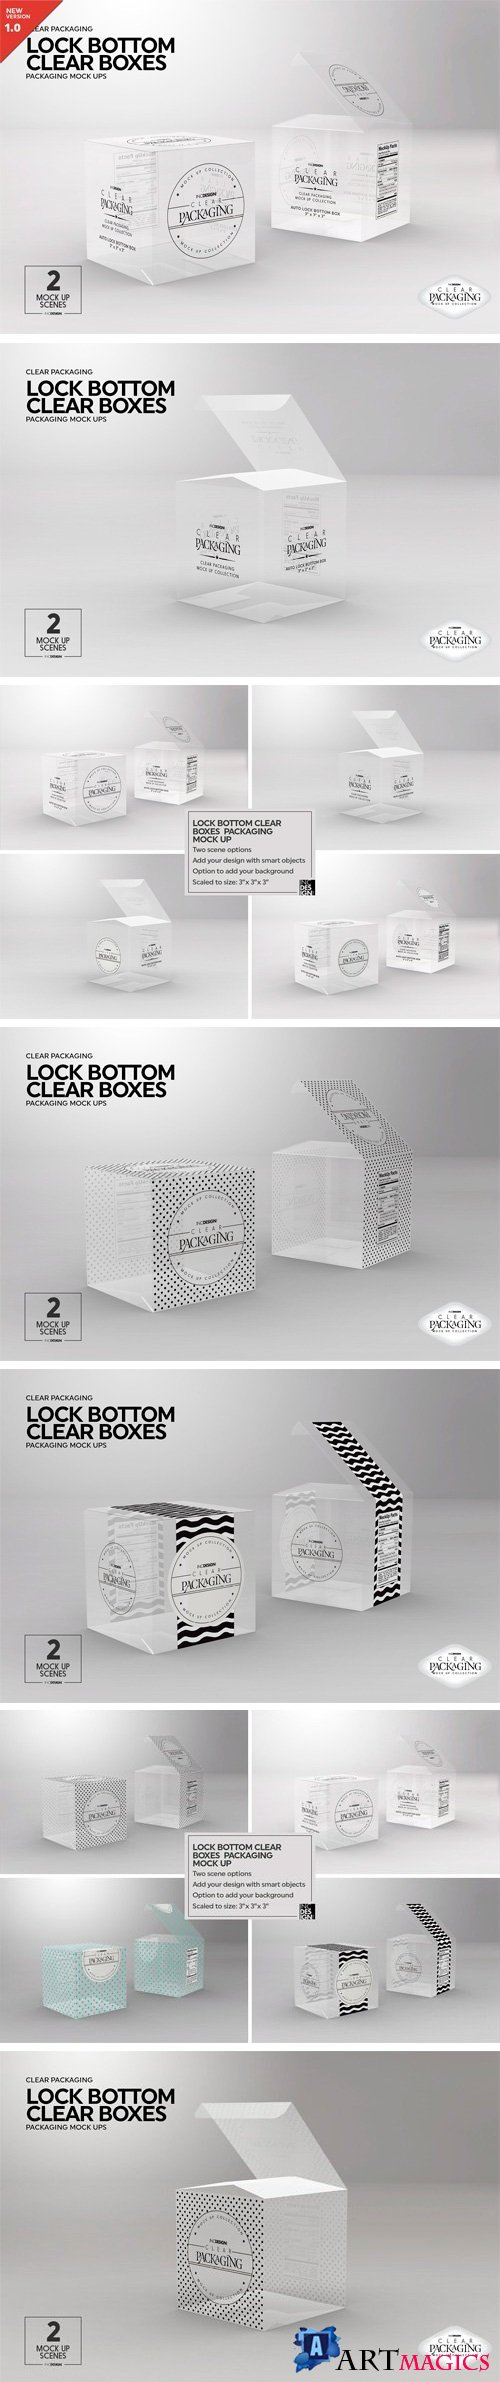 Clear Lock Bottom Boxes MockUp - 2221915